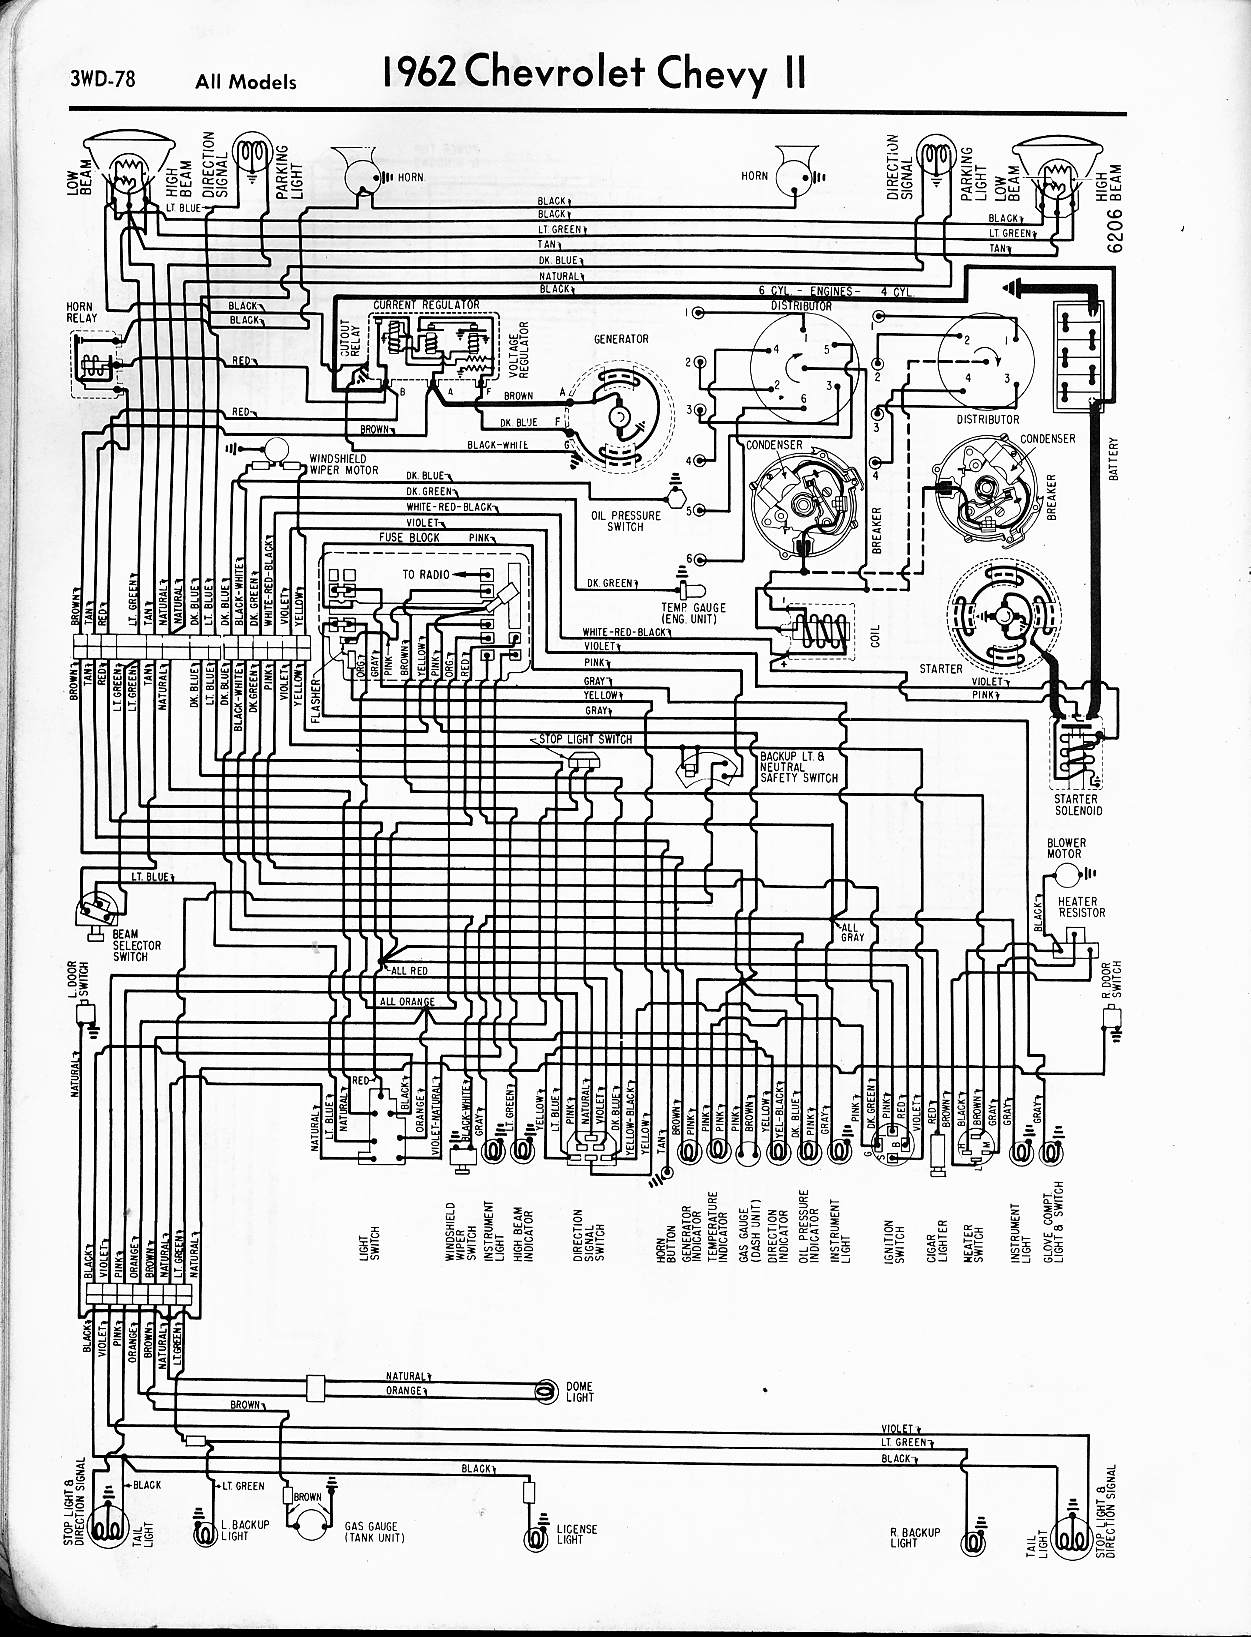 MWireChev62_3WD 078 1963 c10 pickup wiring diagram pdf chevy wiring diagrams \u2022 free chevrolet 1966 impala wiring diagram at crackthecode.co